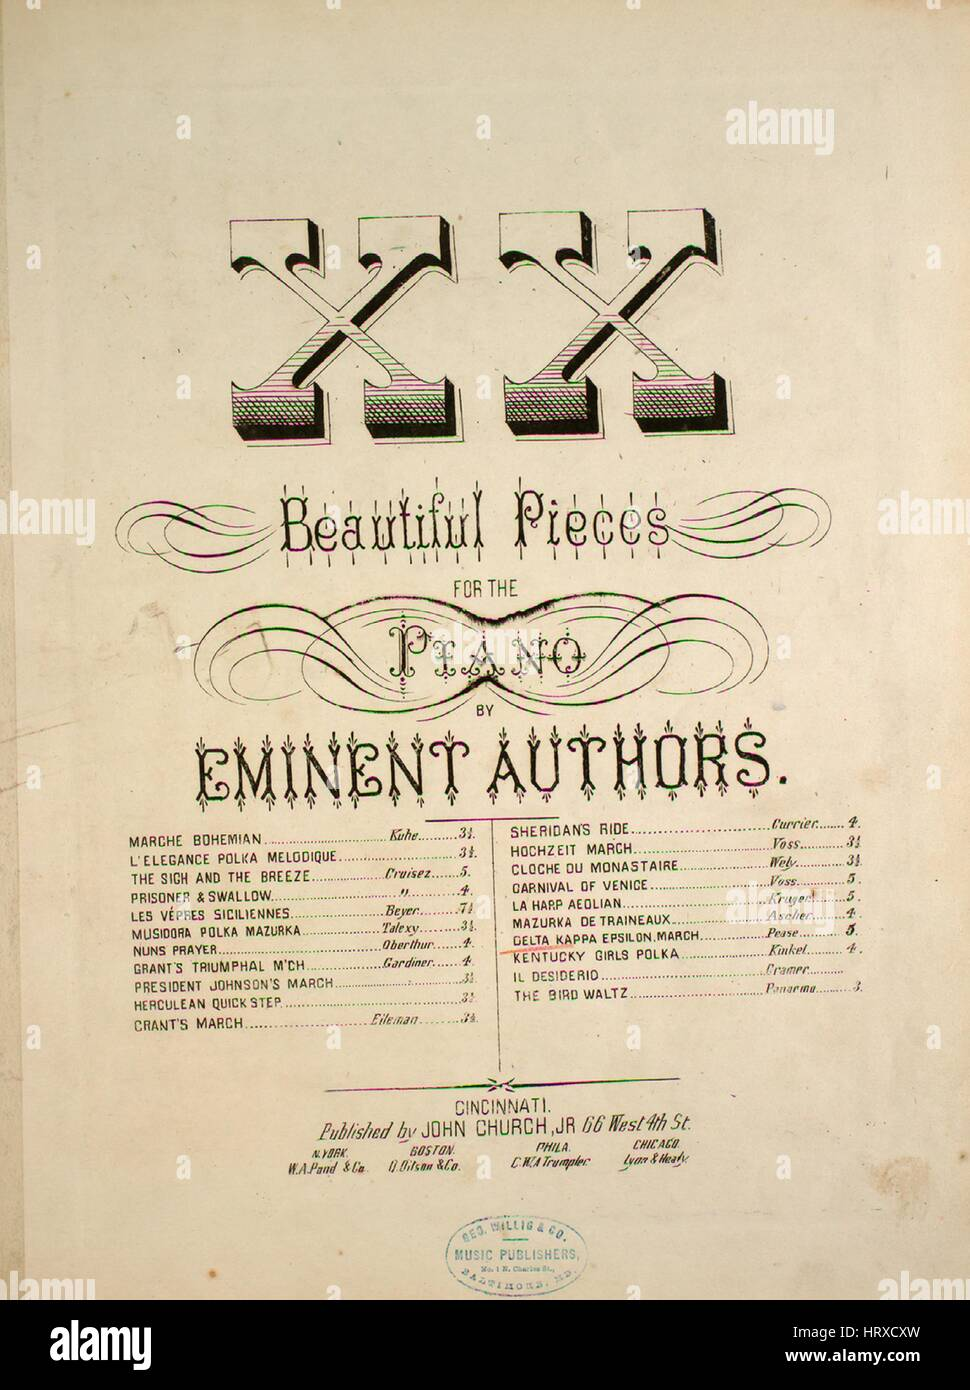 Sheet music cover image of the song 'XX Beautiful Pieces for